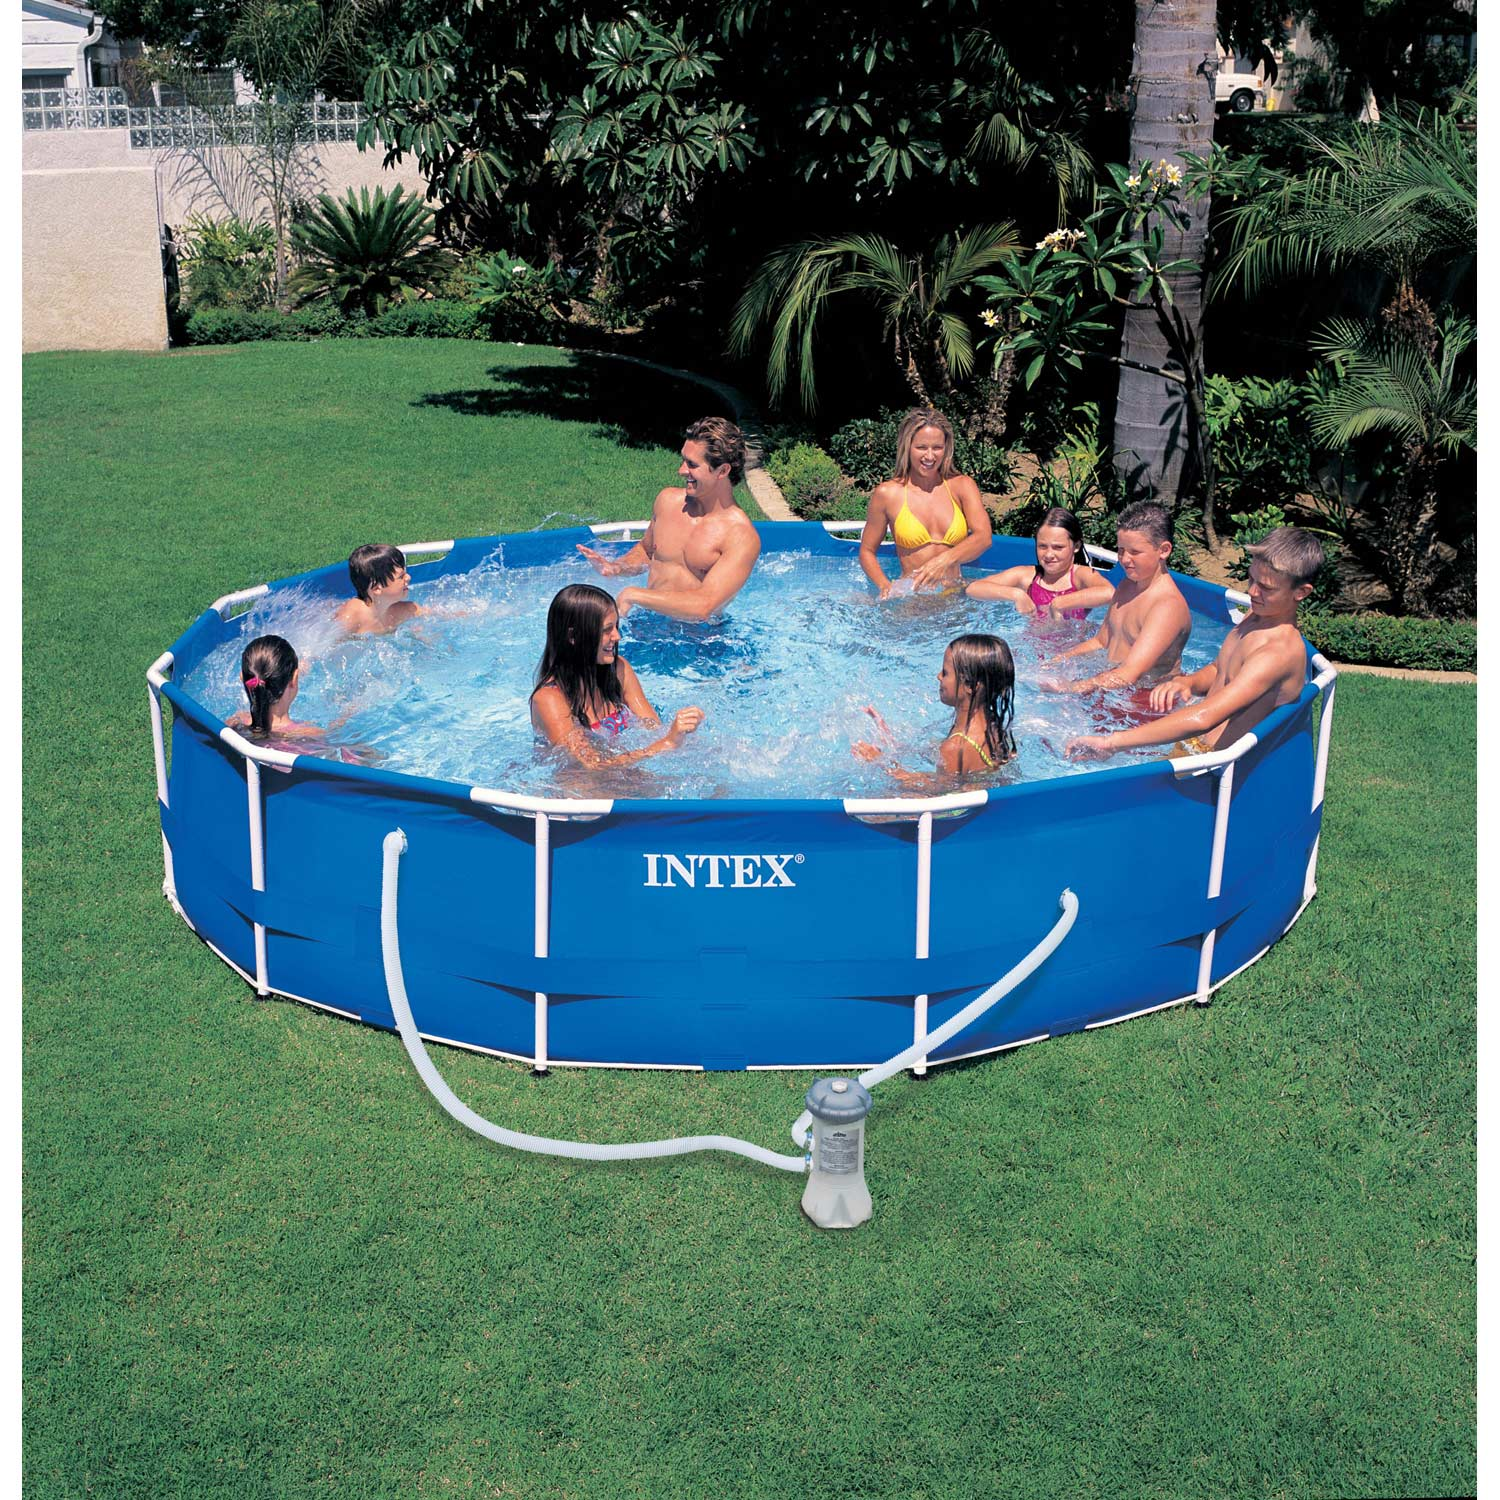 Piscine hors sol autoportante tubulaire metal frame intex for Piscine hors sol taille